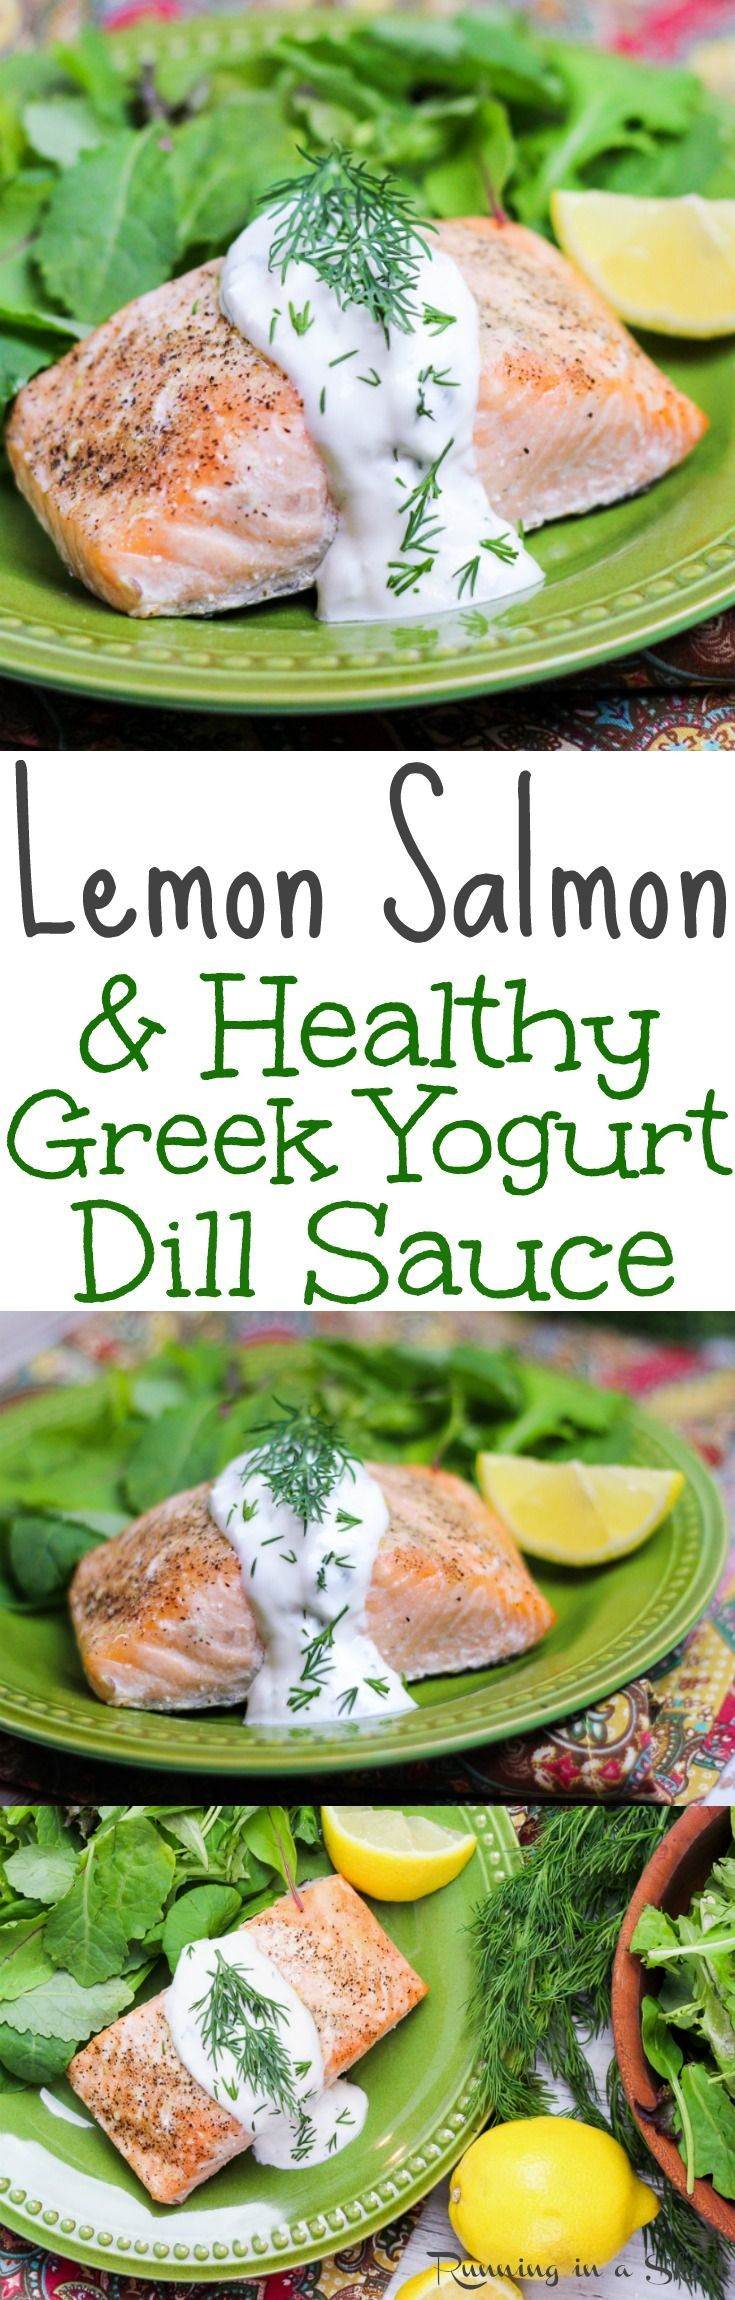 Baked Lemon Salmon with Greek Yogurt Dill Sauce recipe. This easy, clean eating and healthy salmon recipe is perfect for dinners or lunch.  A quick 20 minute pescatarian meal. Gluten free, low carb and healthy! / Running in a Skirt